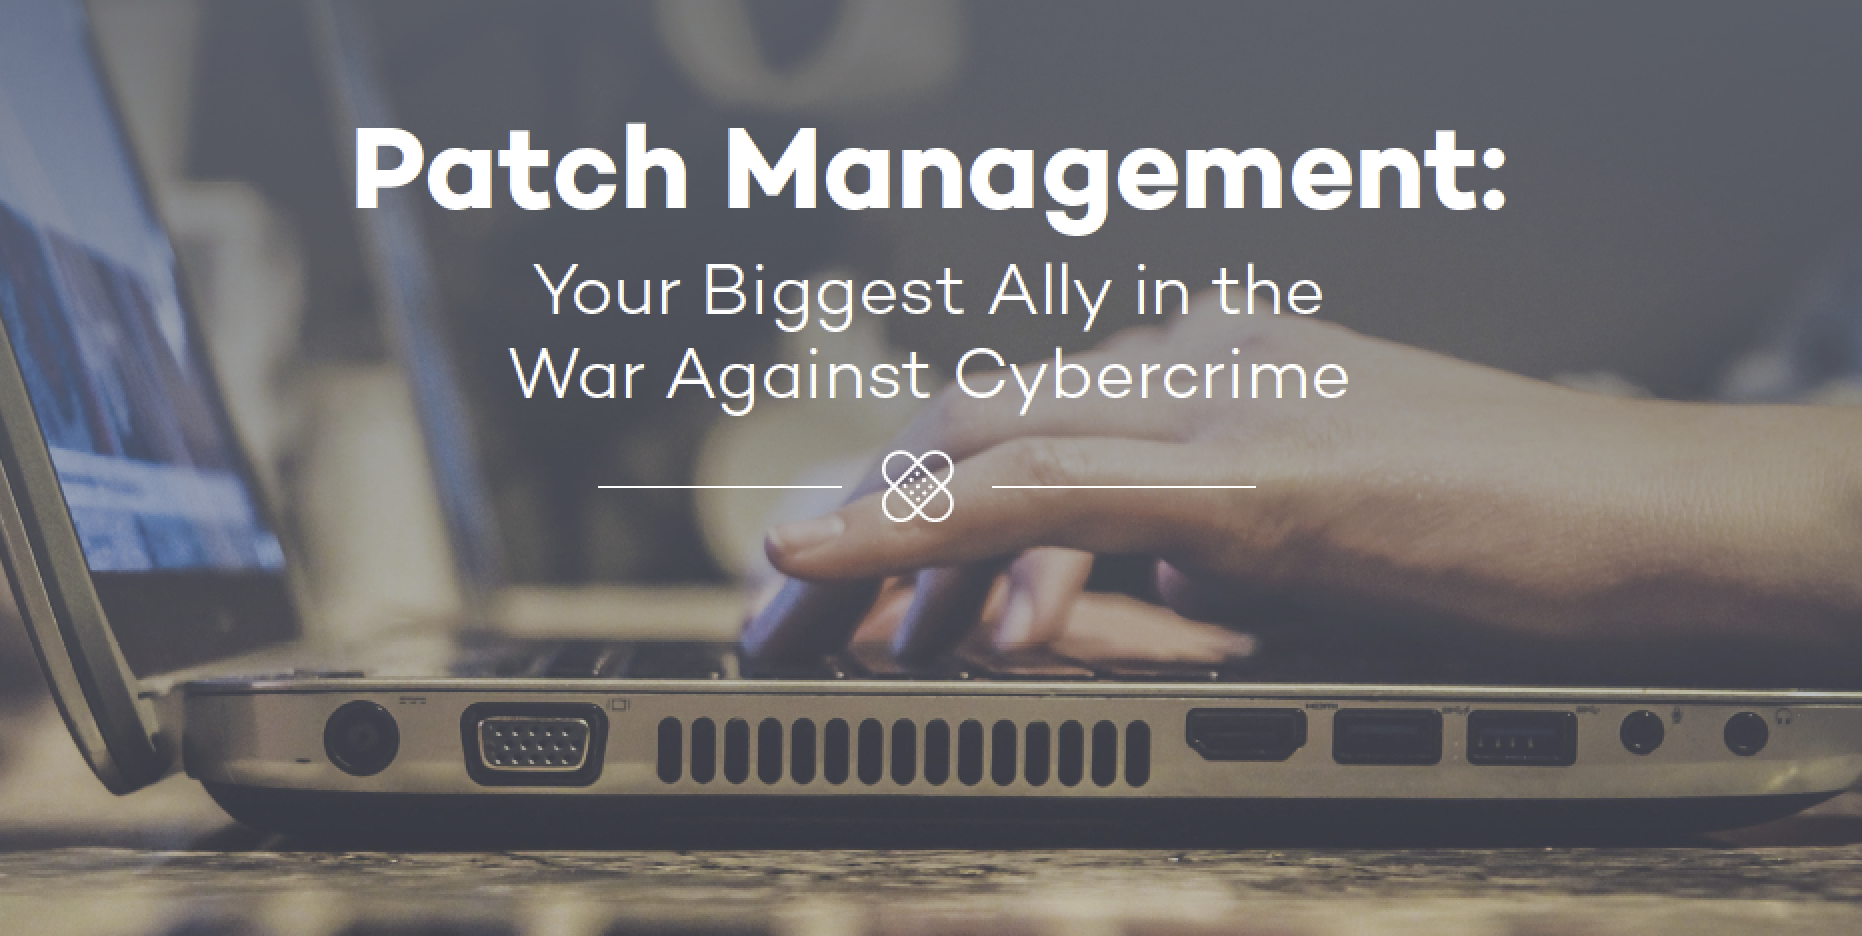 Patch Management: Your Biggest Ally in the War Against Cybercrime